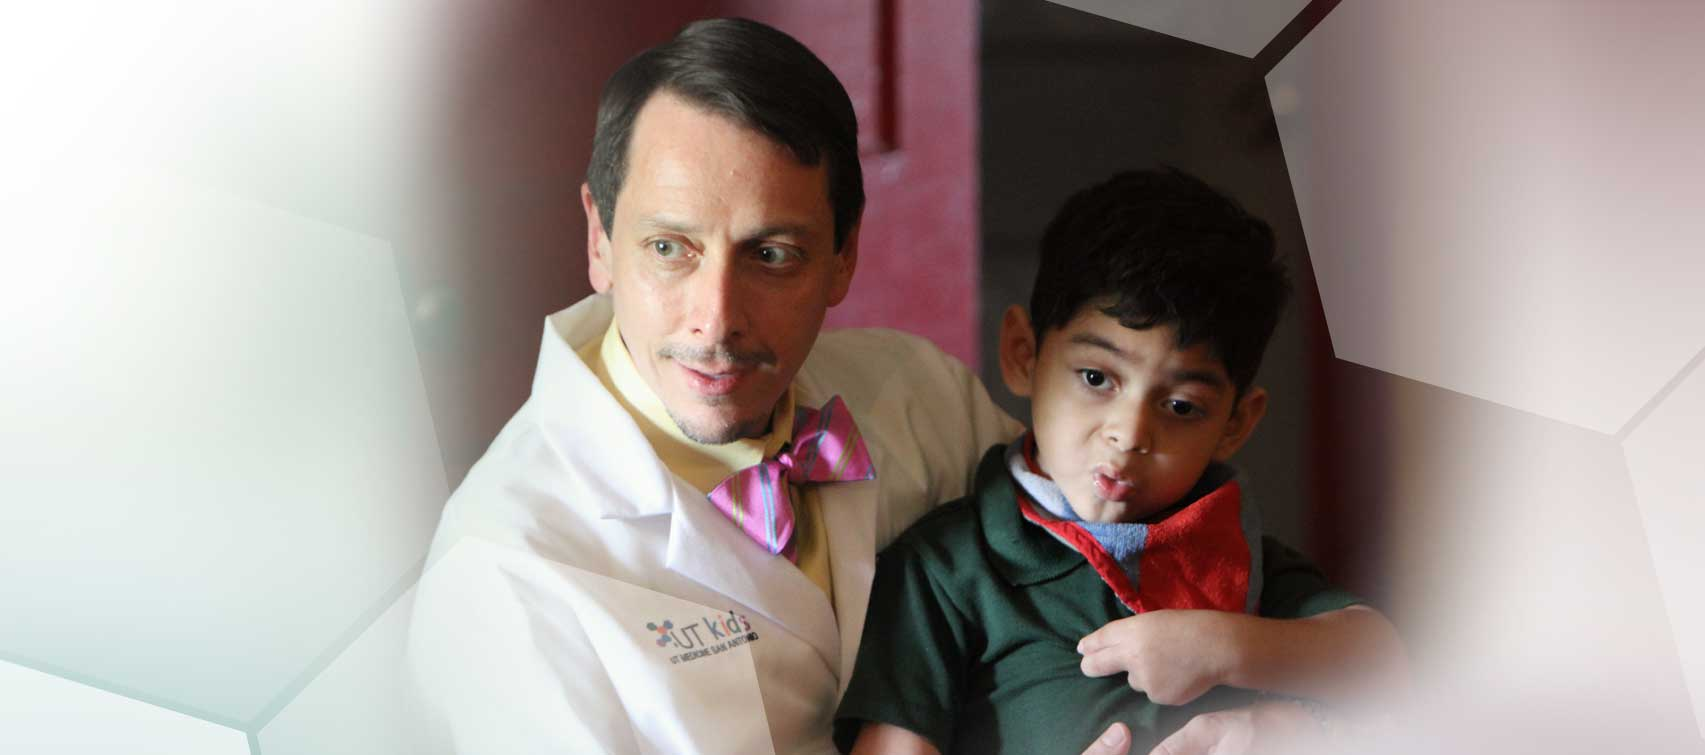 Dr. Medellin and young male patient  Dr. Glen Mendellin treats pediatric cerebral palsy patients.